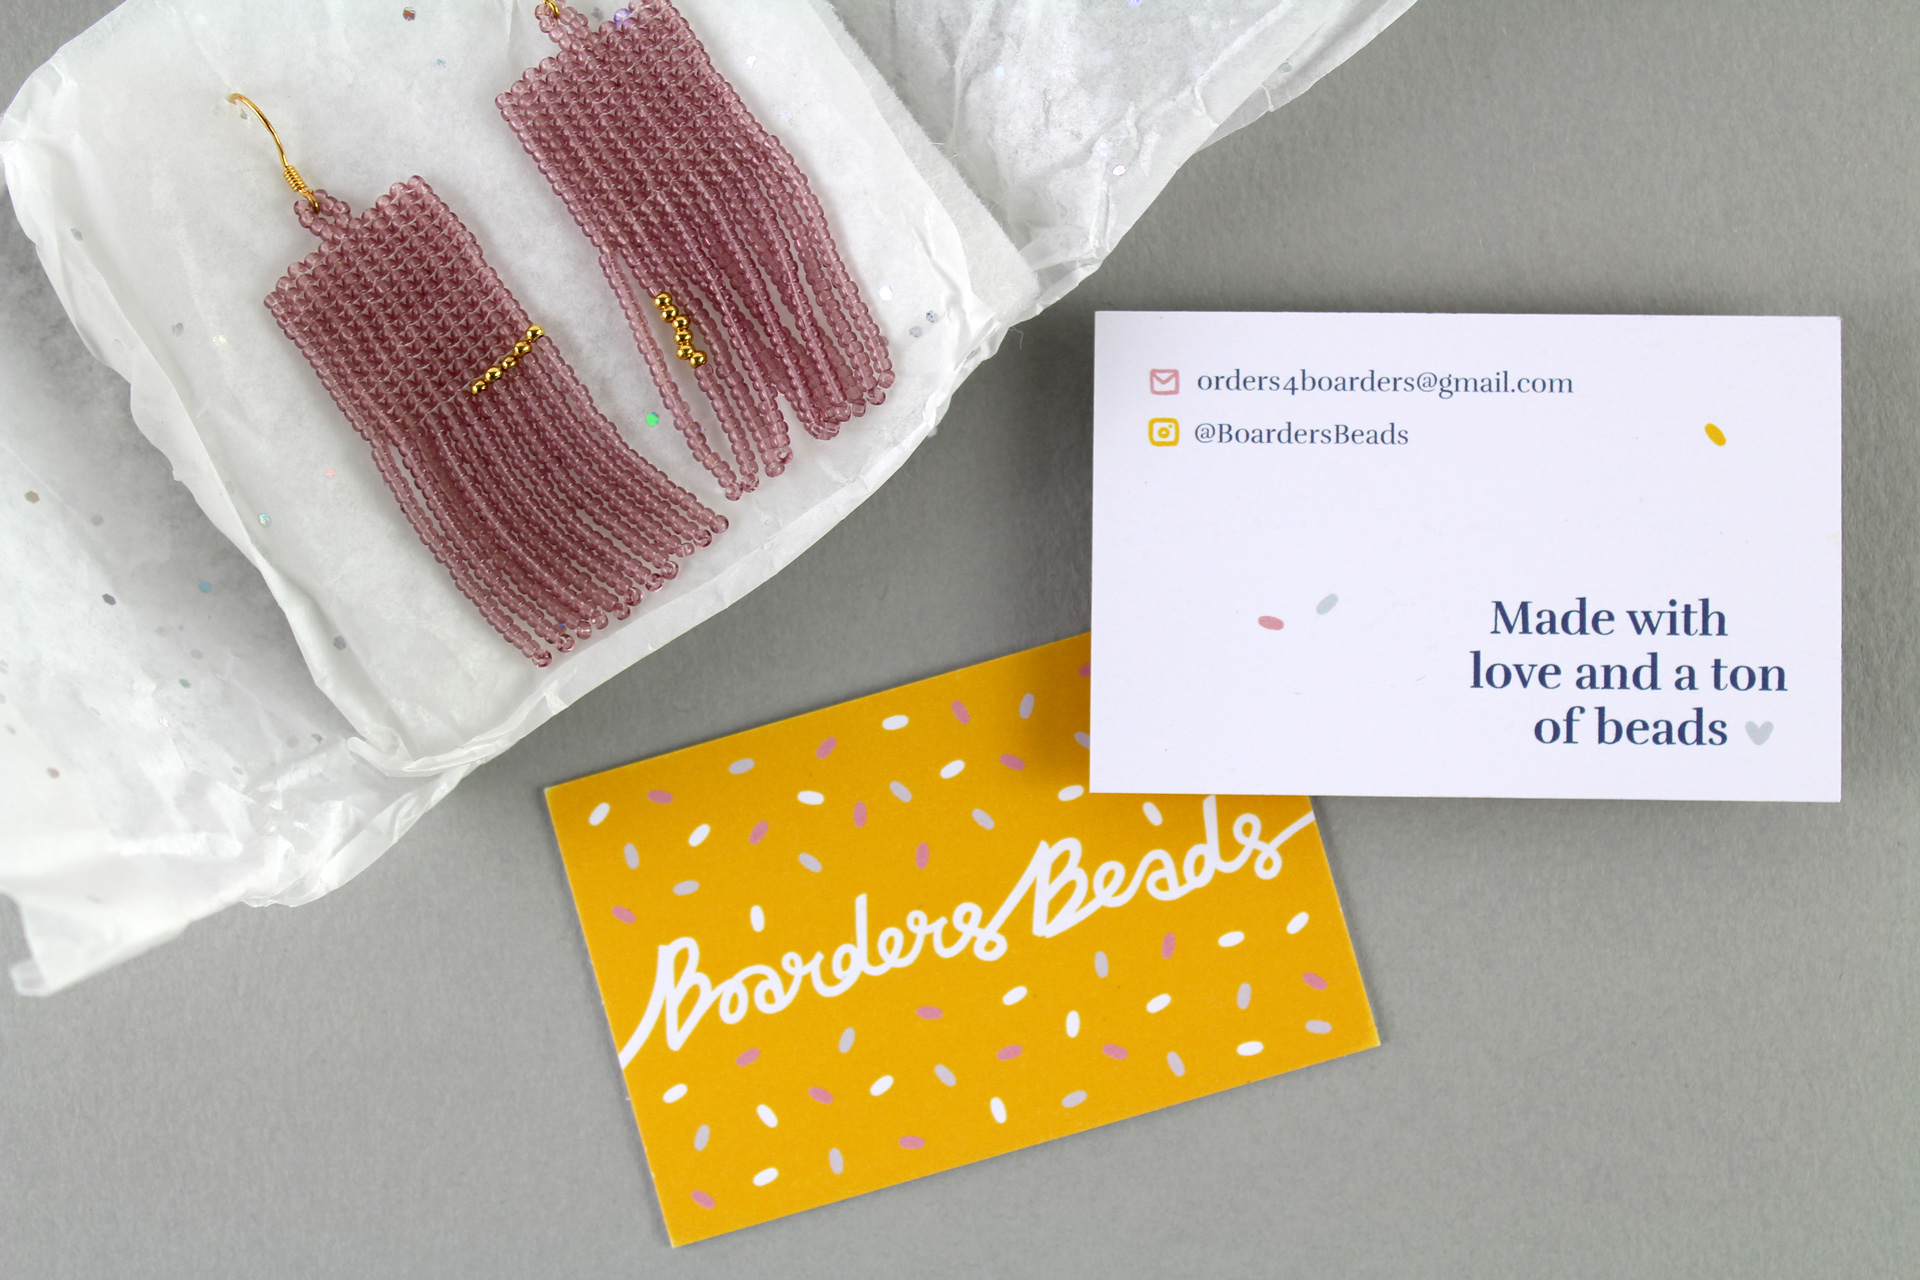 Brand stationery for Boarders Beads